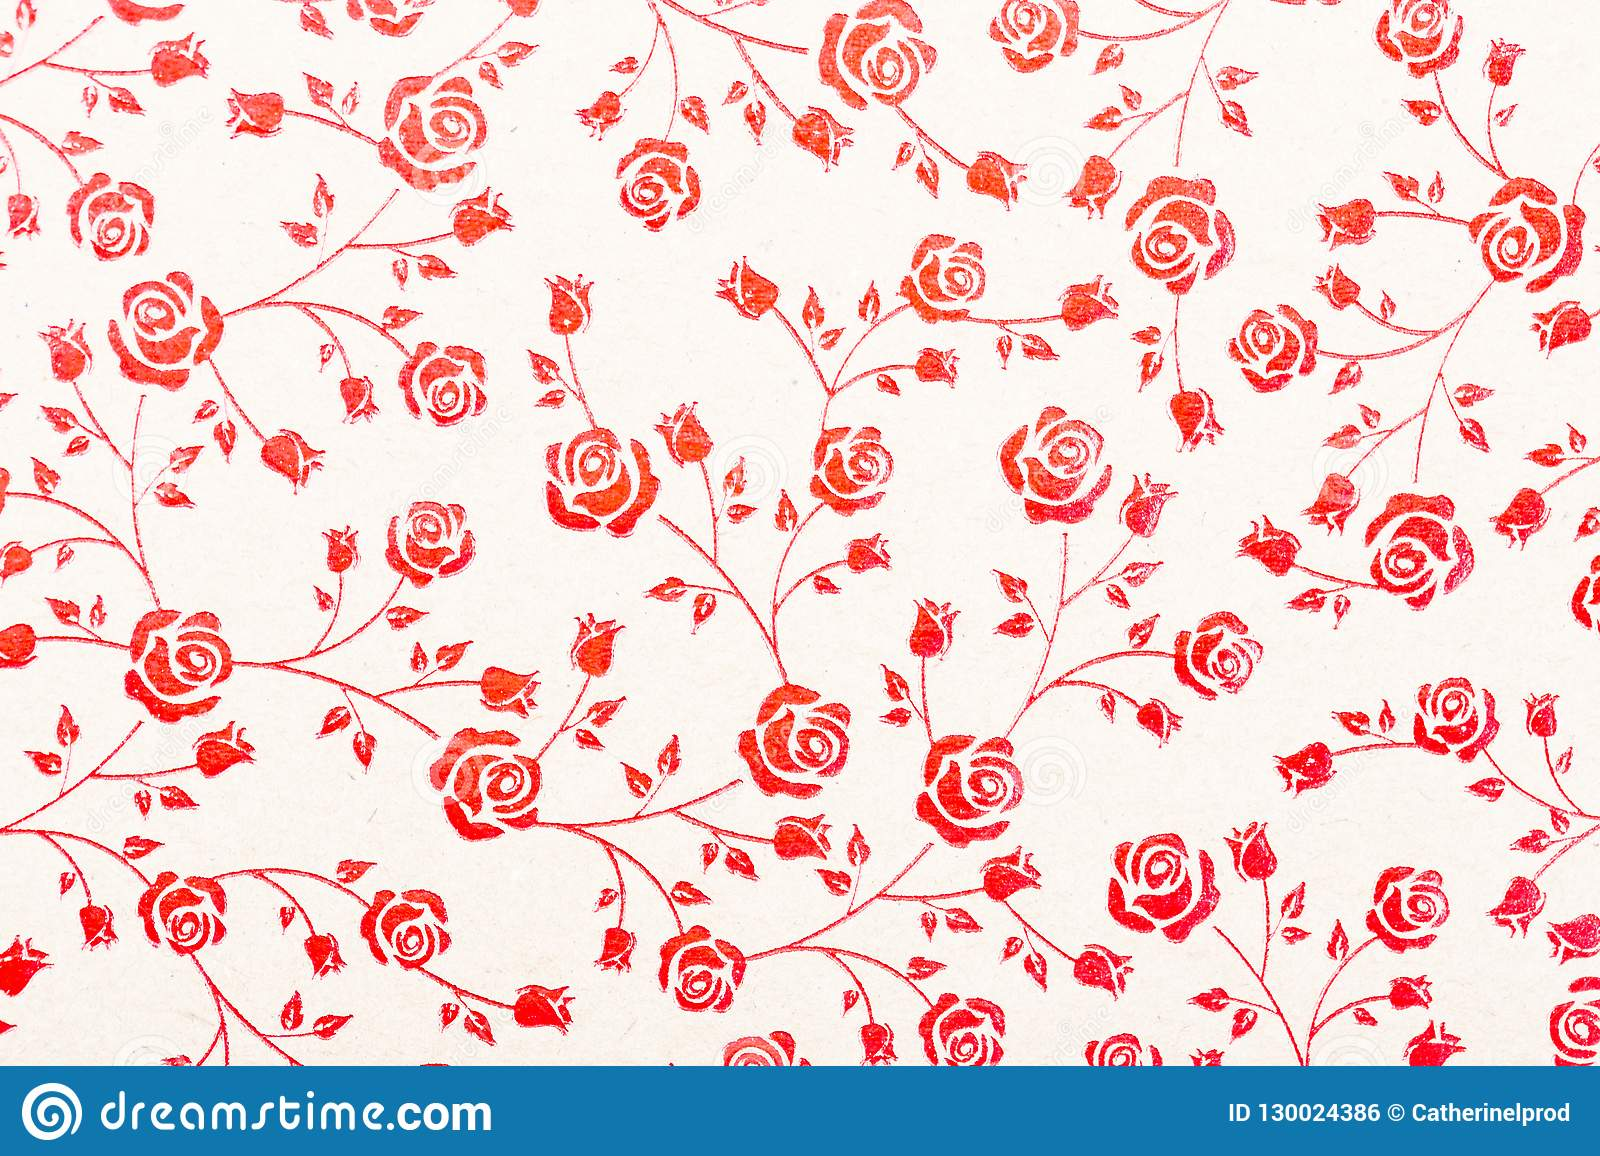 photo regarding Printable Gift Wrapper called Bouquets Behavior Paper For Textile Wallpaper Routine Fills